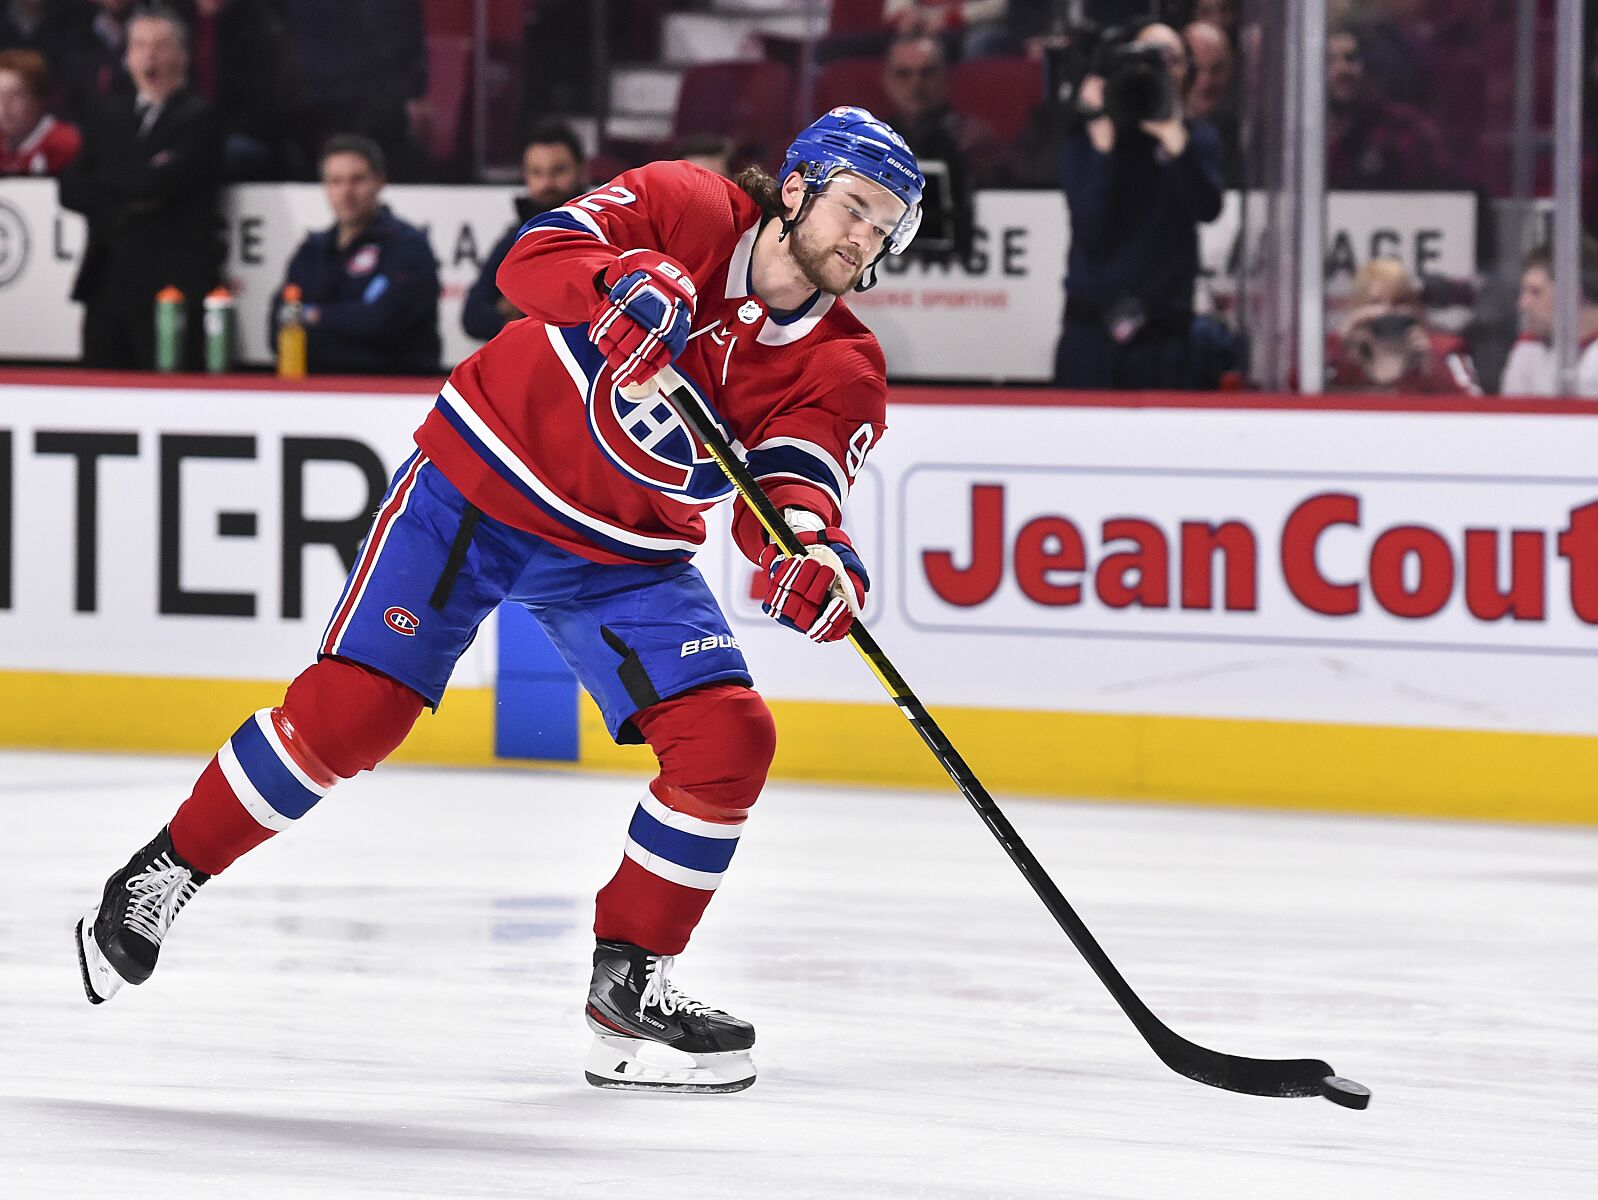 Montreal Canadiens: What does the future hold for Jonathan